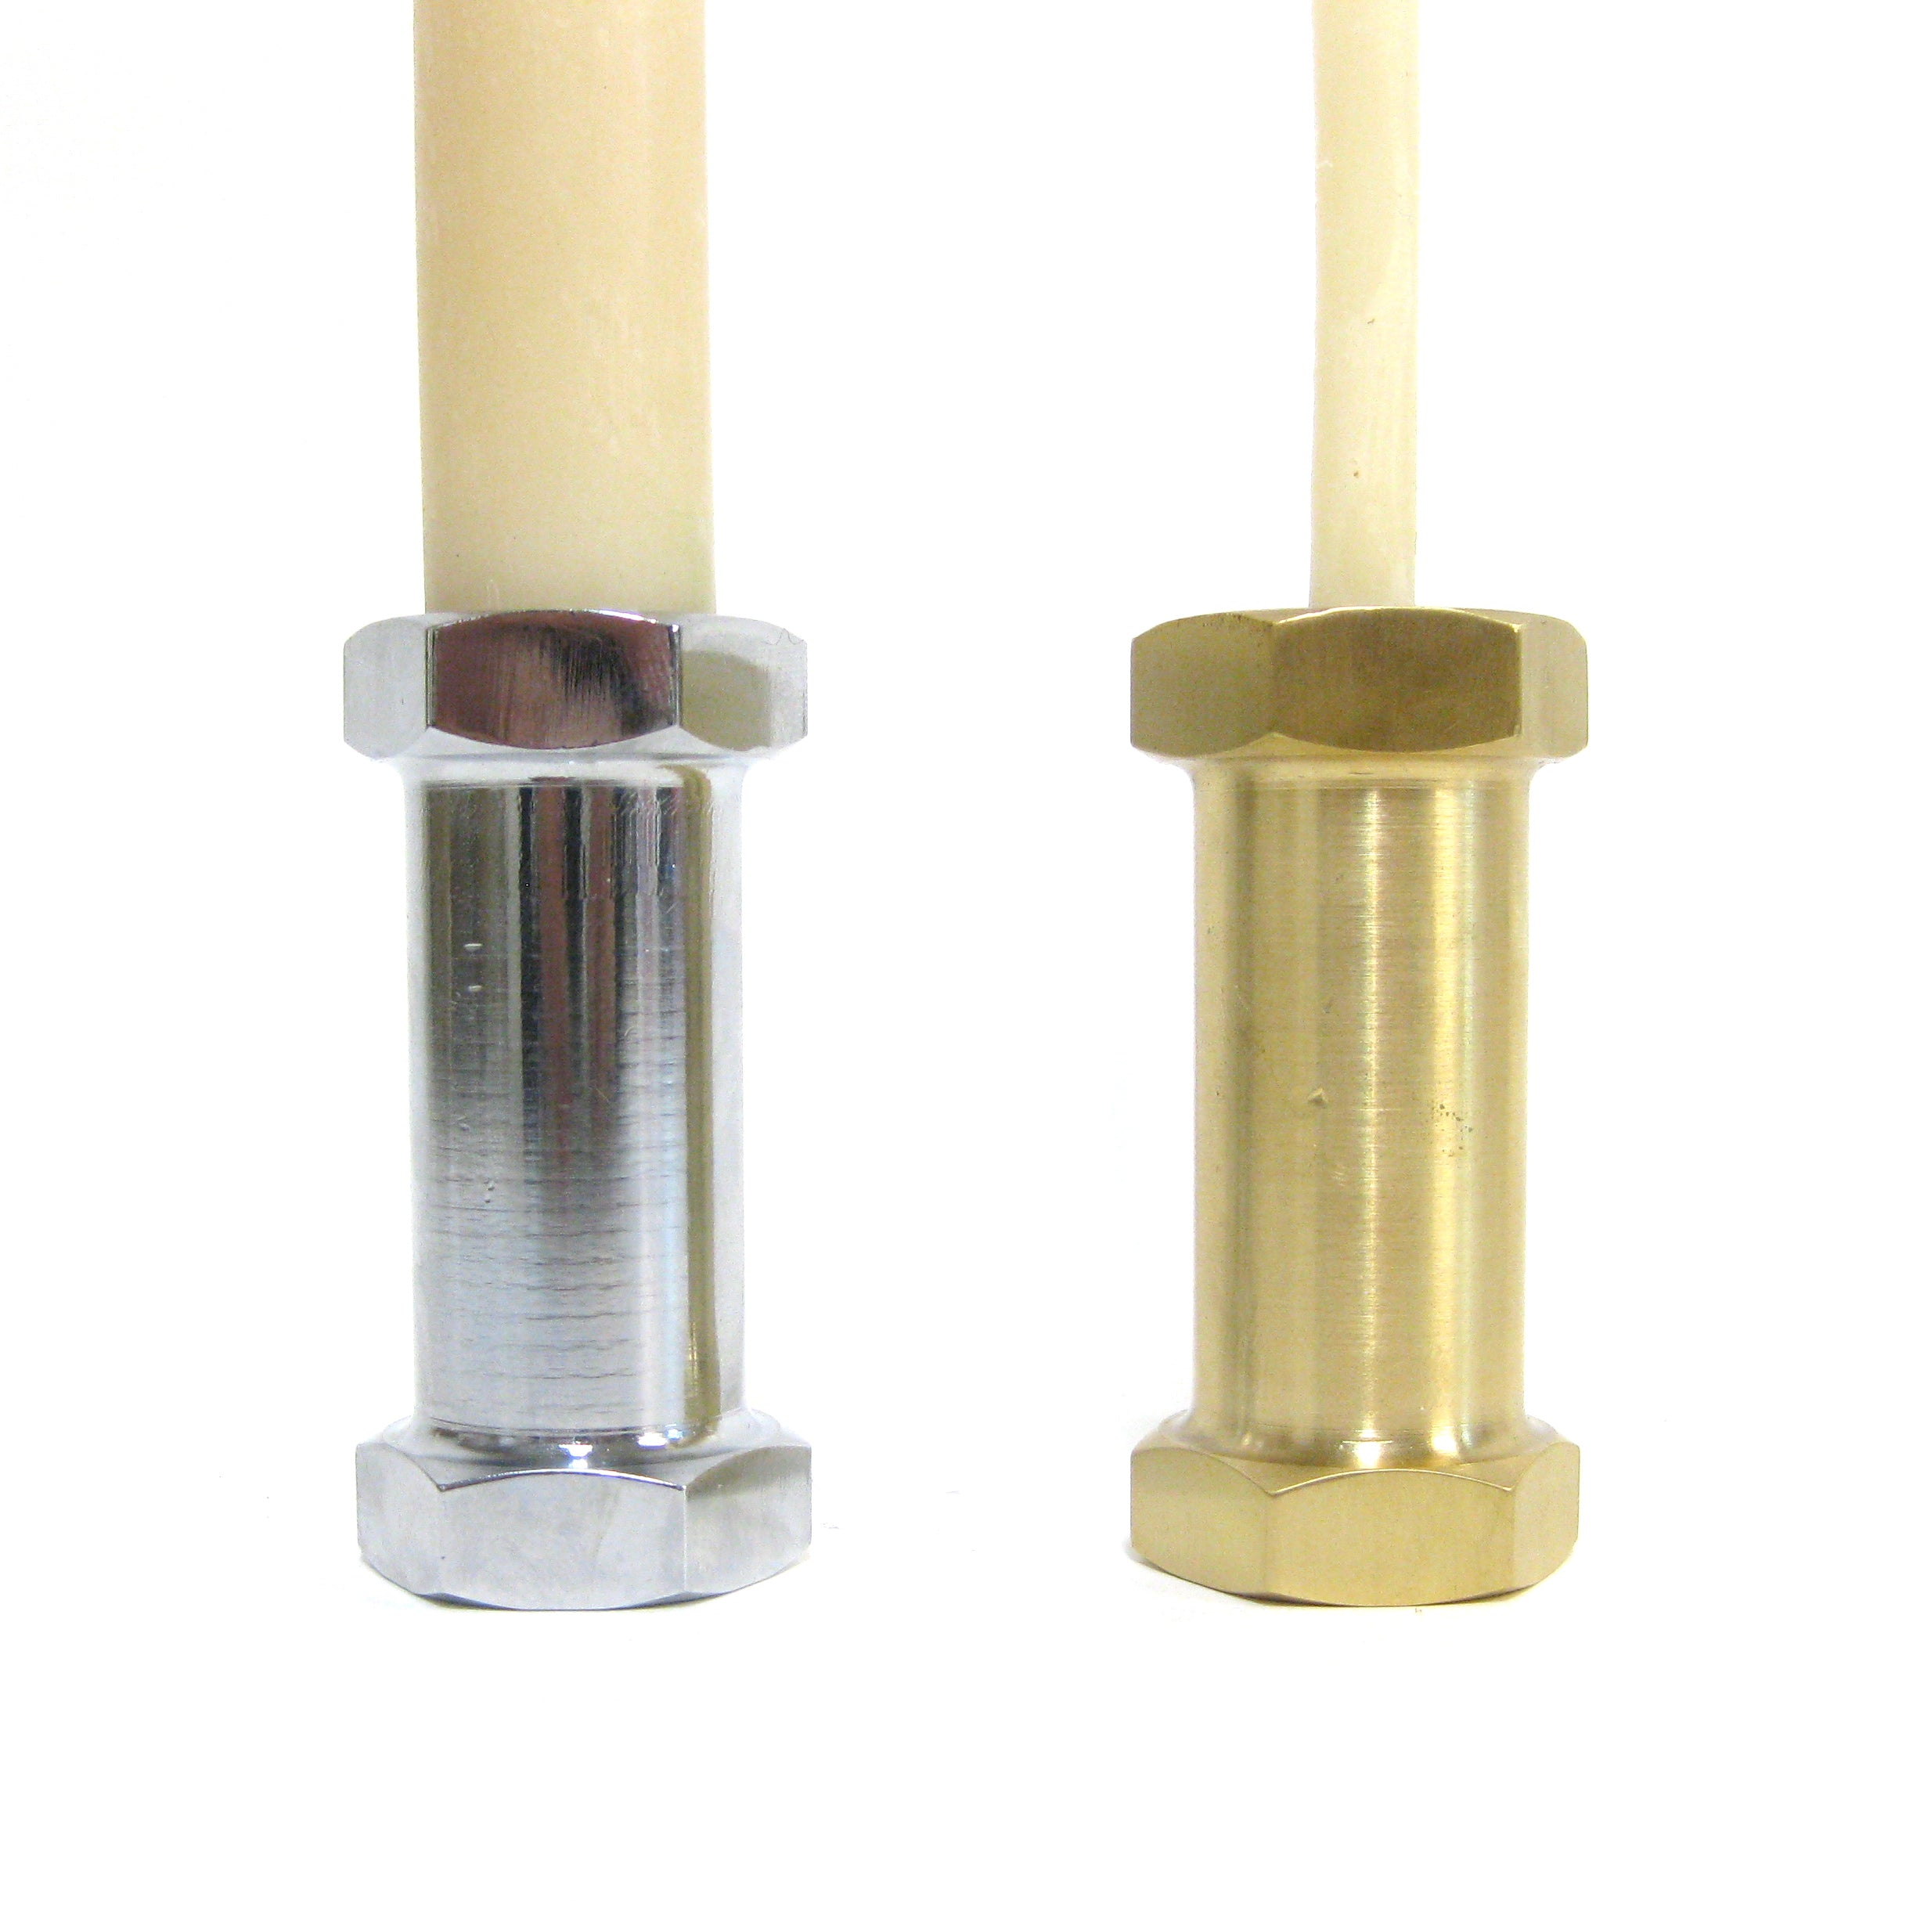 Nickel plated vs Brass Earthing Stubb Candle Holder